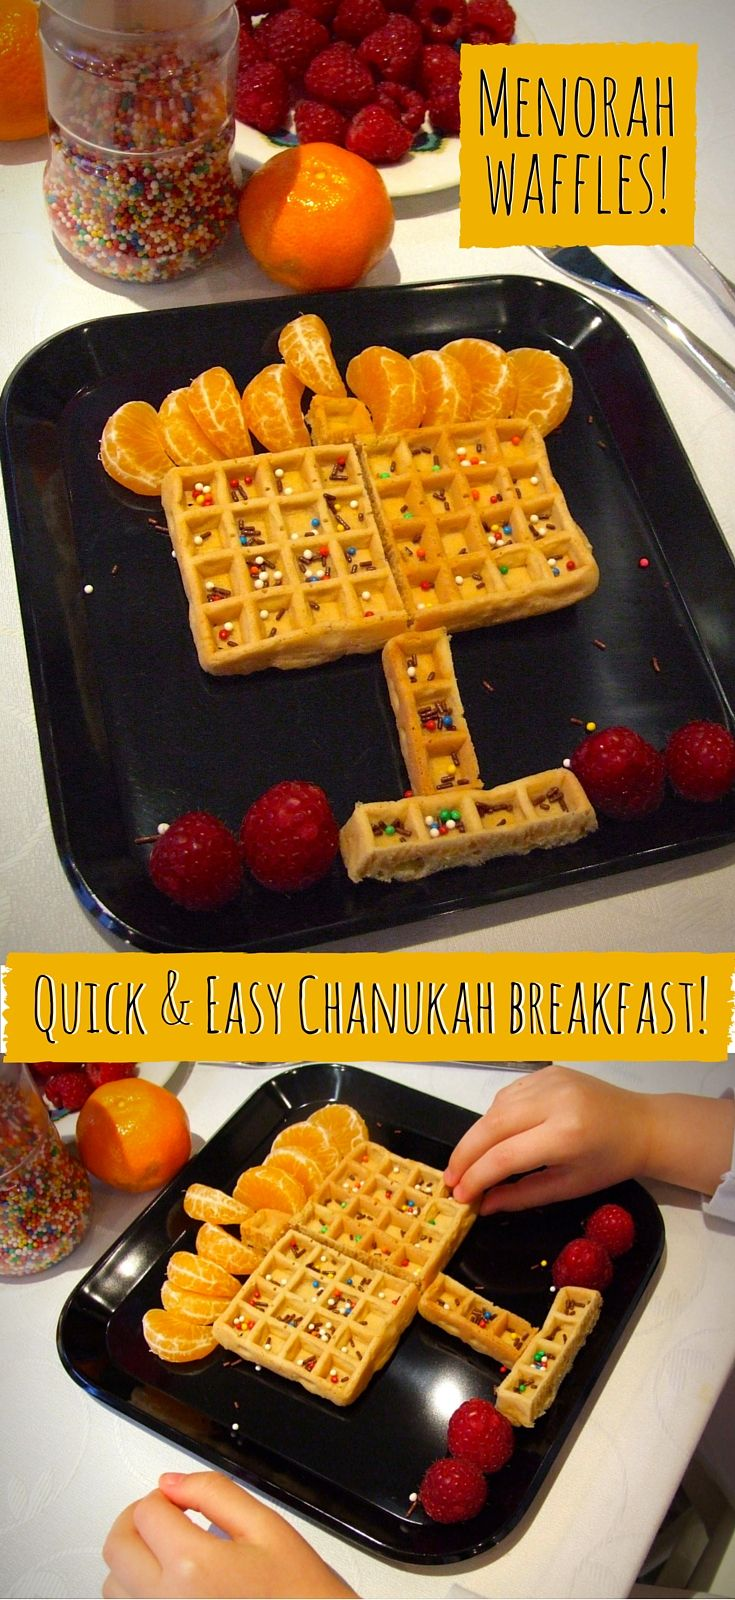 You can assemble these quick & easy Menorah waffles in moments for a special…